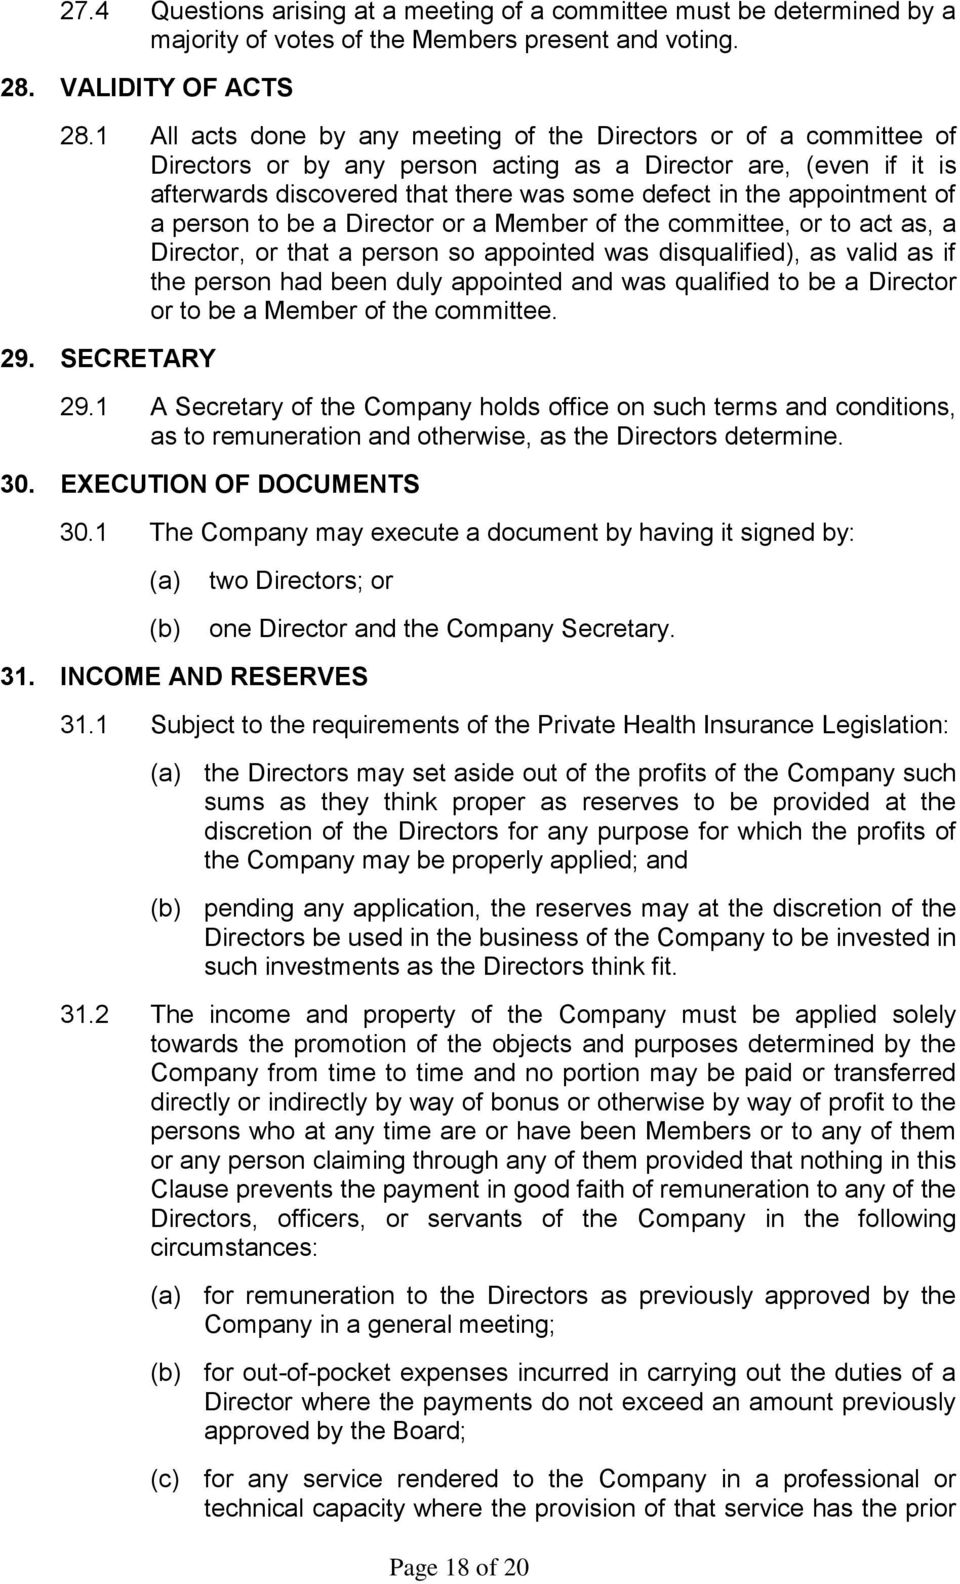 appointment of a person to be a Director or a Member of the committee, or to act as, a Director, or that a person so appointed was disqualified), as valid as if the person had been duly appointed and